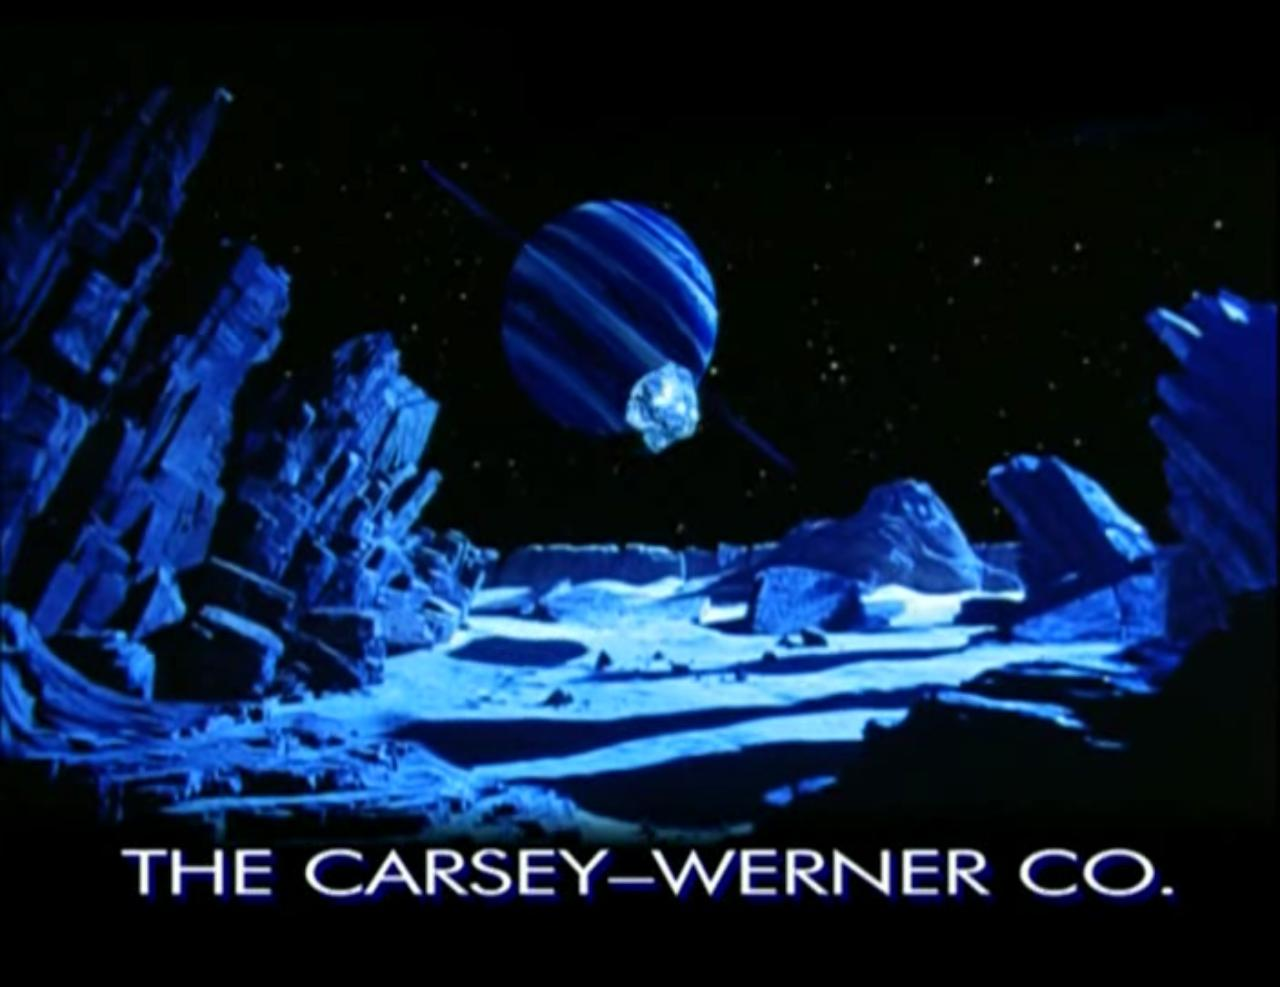 The Carsey-Werner Company (1996-2001)